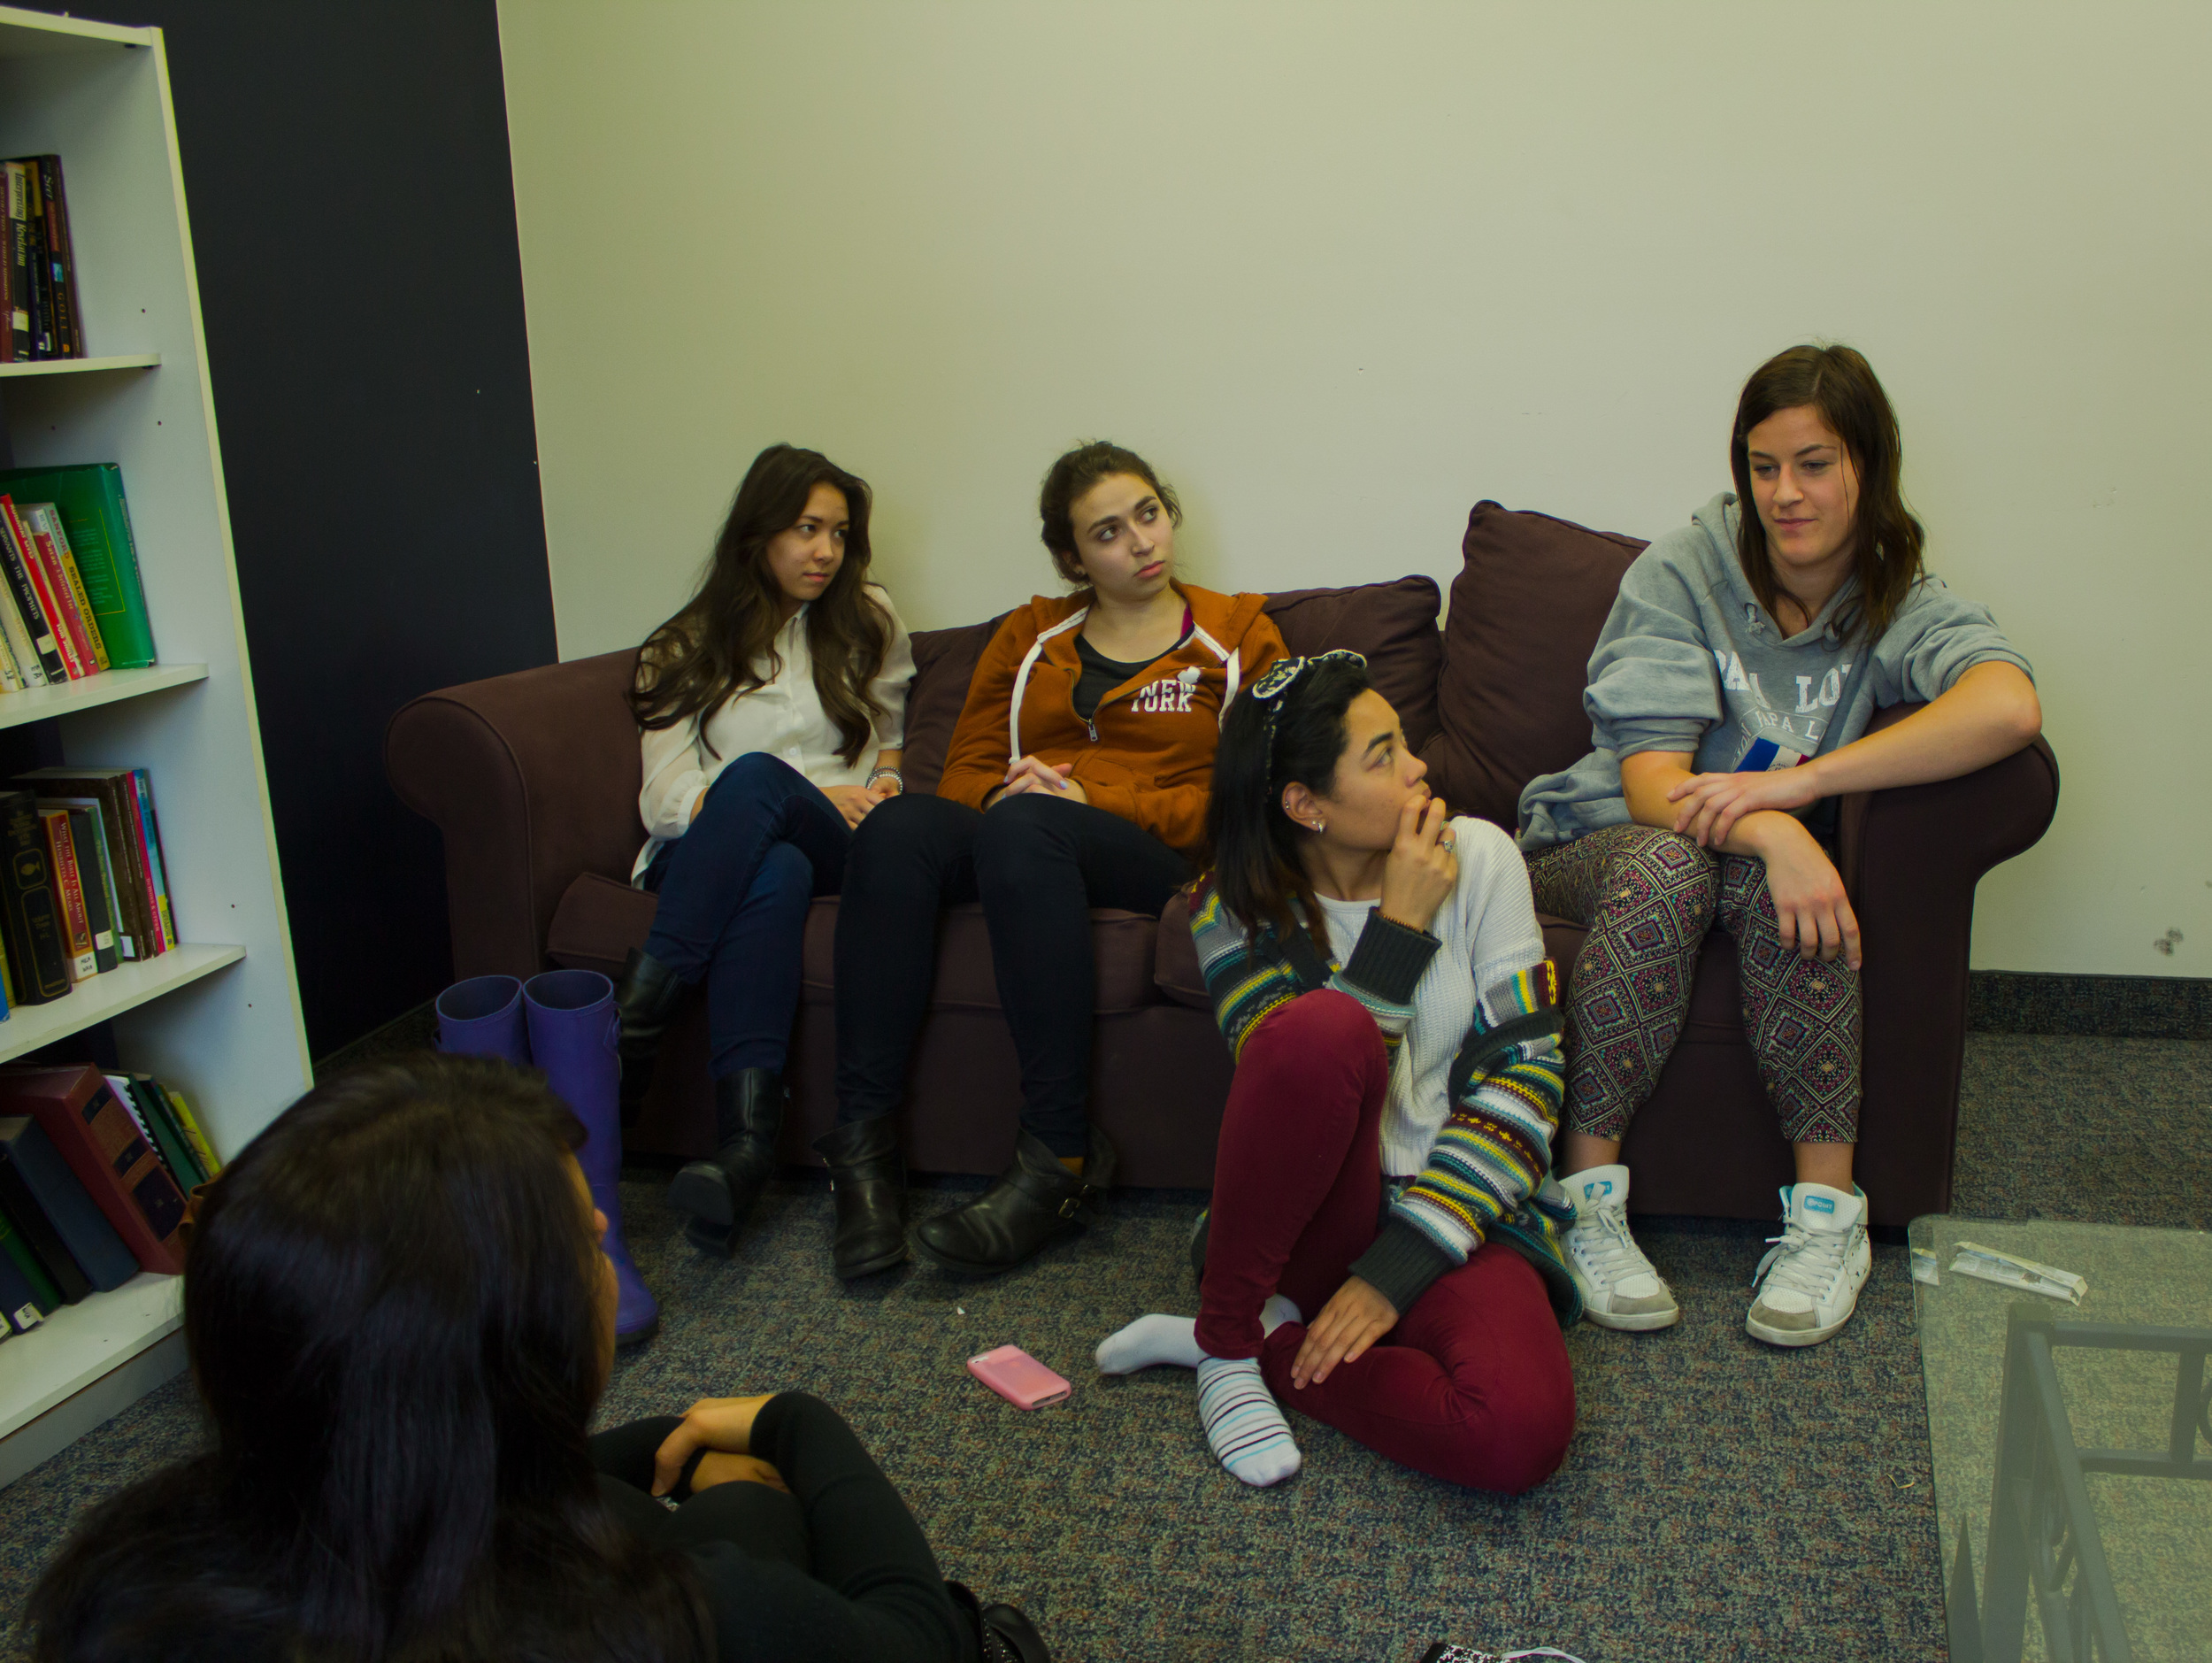 The lounges are comfortable spaces where students can socialize, spend time with God, or have that all-important Skype home. One of the lounges is designated a creative space, with easels, some art supplies, and room to get  messy,innovate, and have fun.